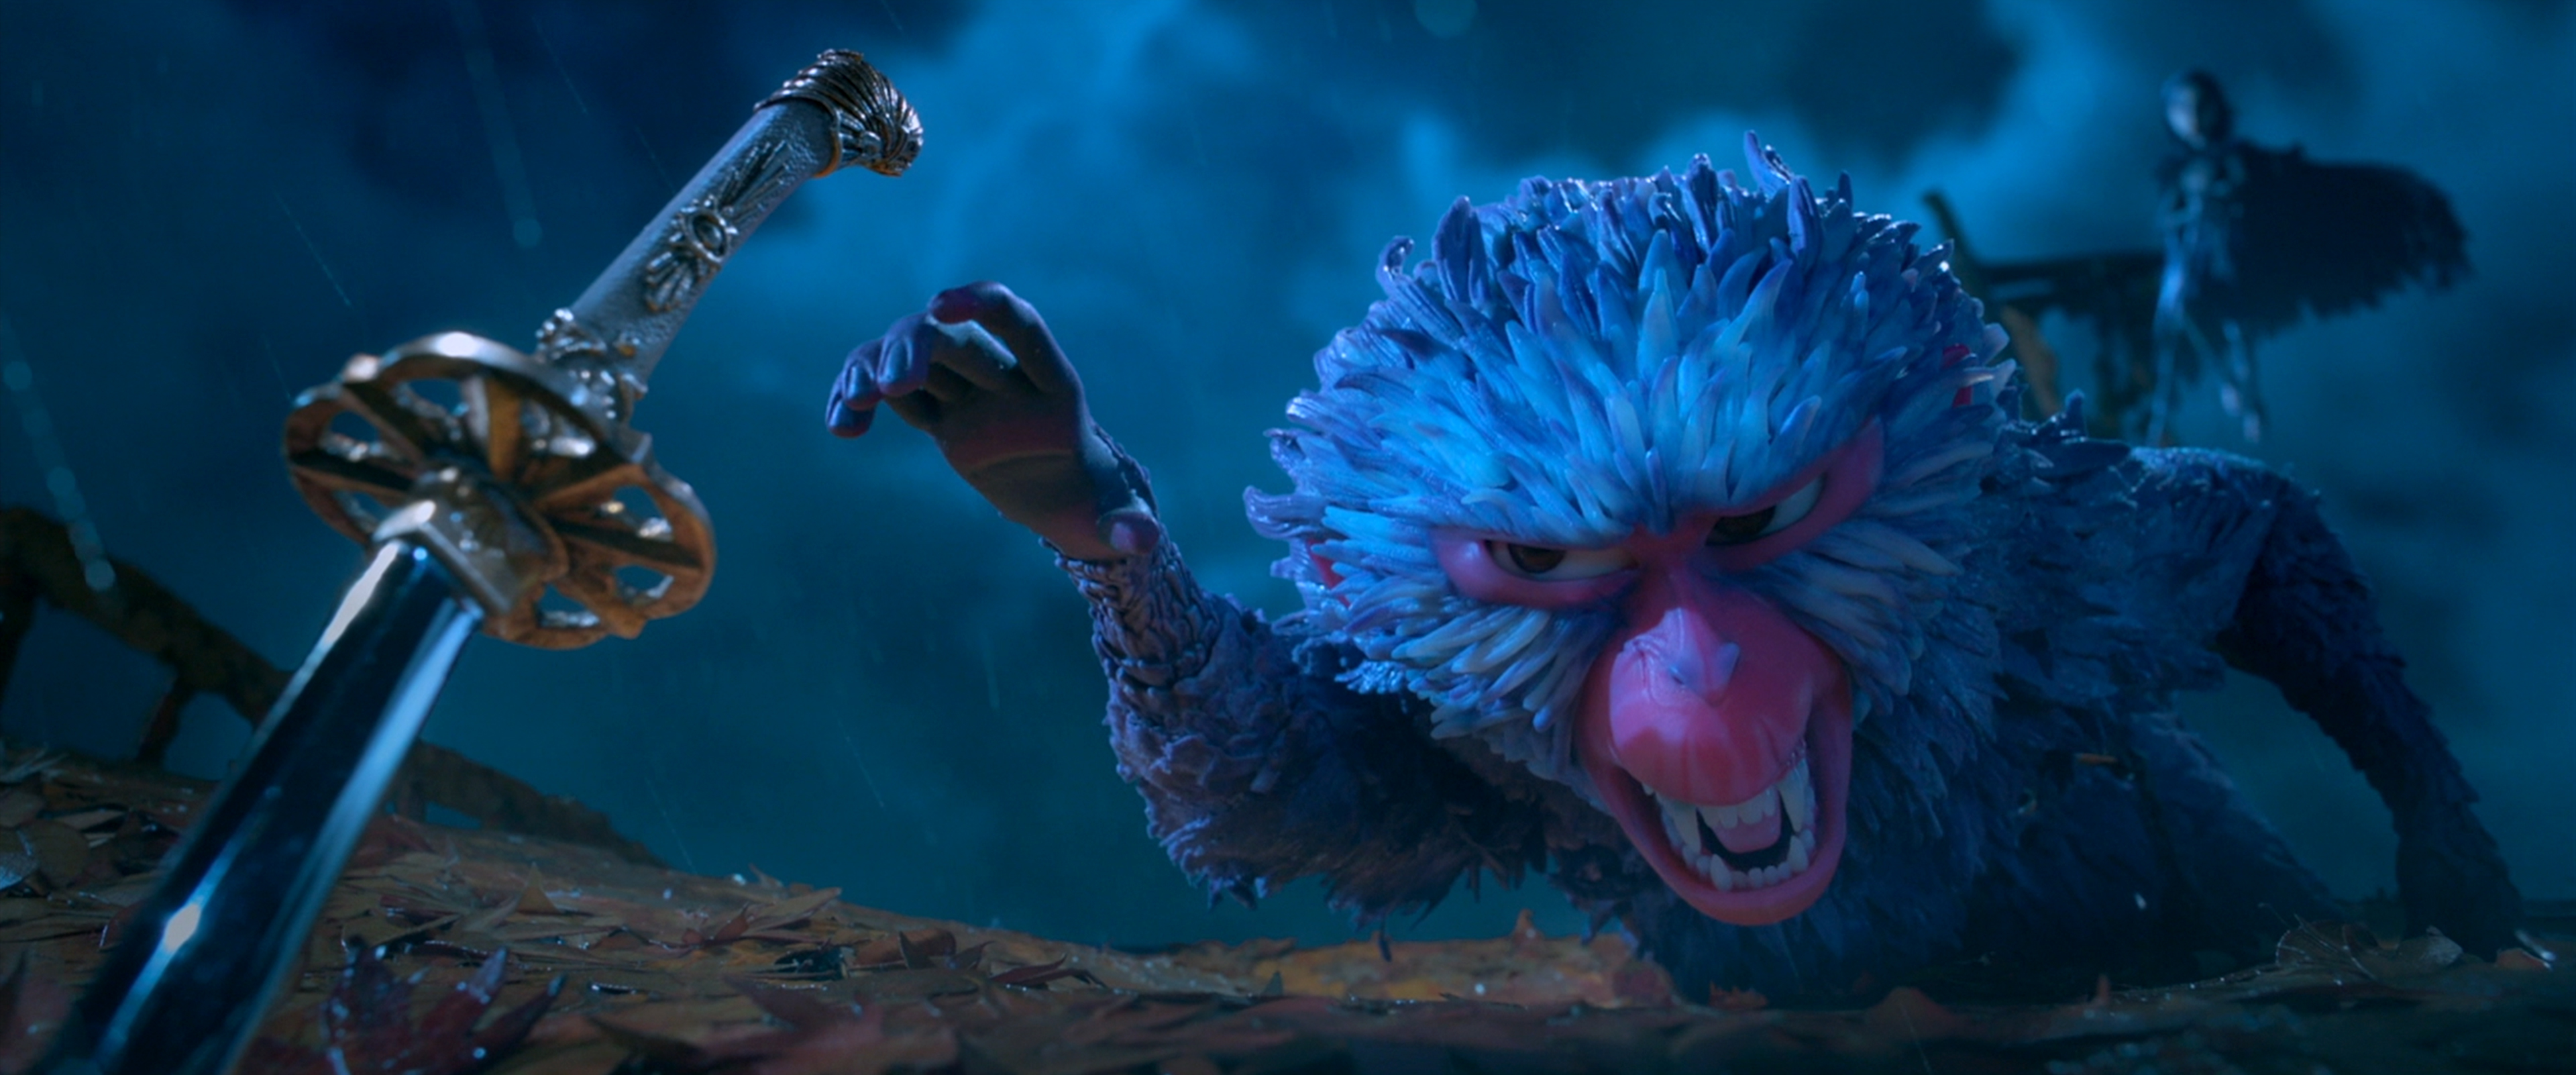 'Kubo and the Two Strings': How Laika Made the Thrilling Boat Sequence (Exclusive Video)